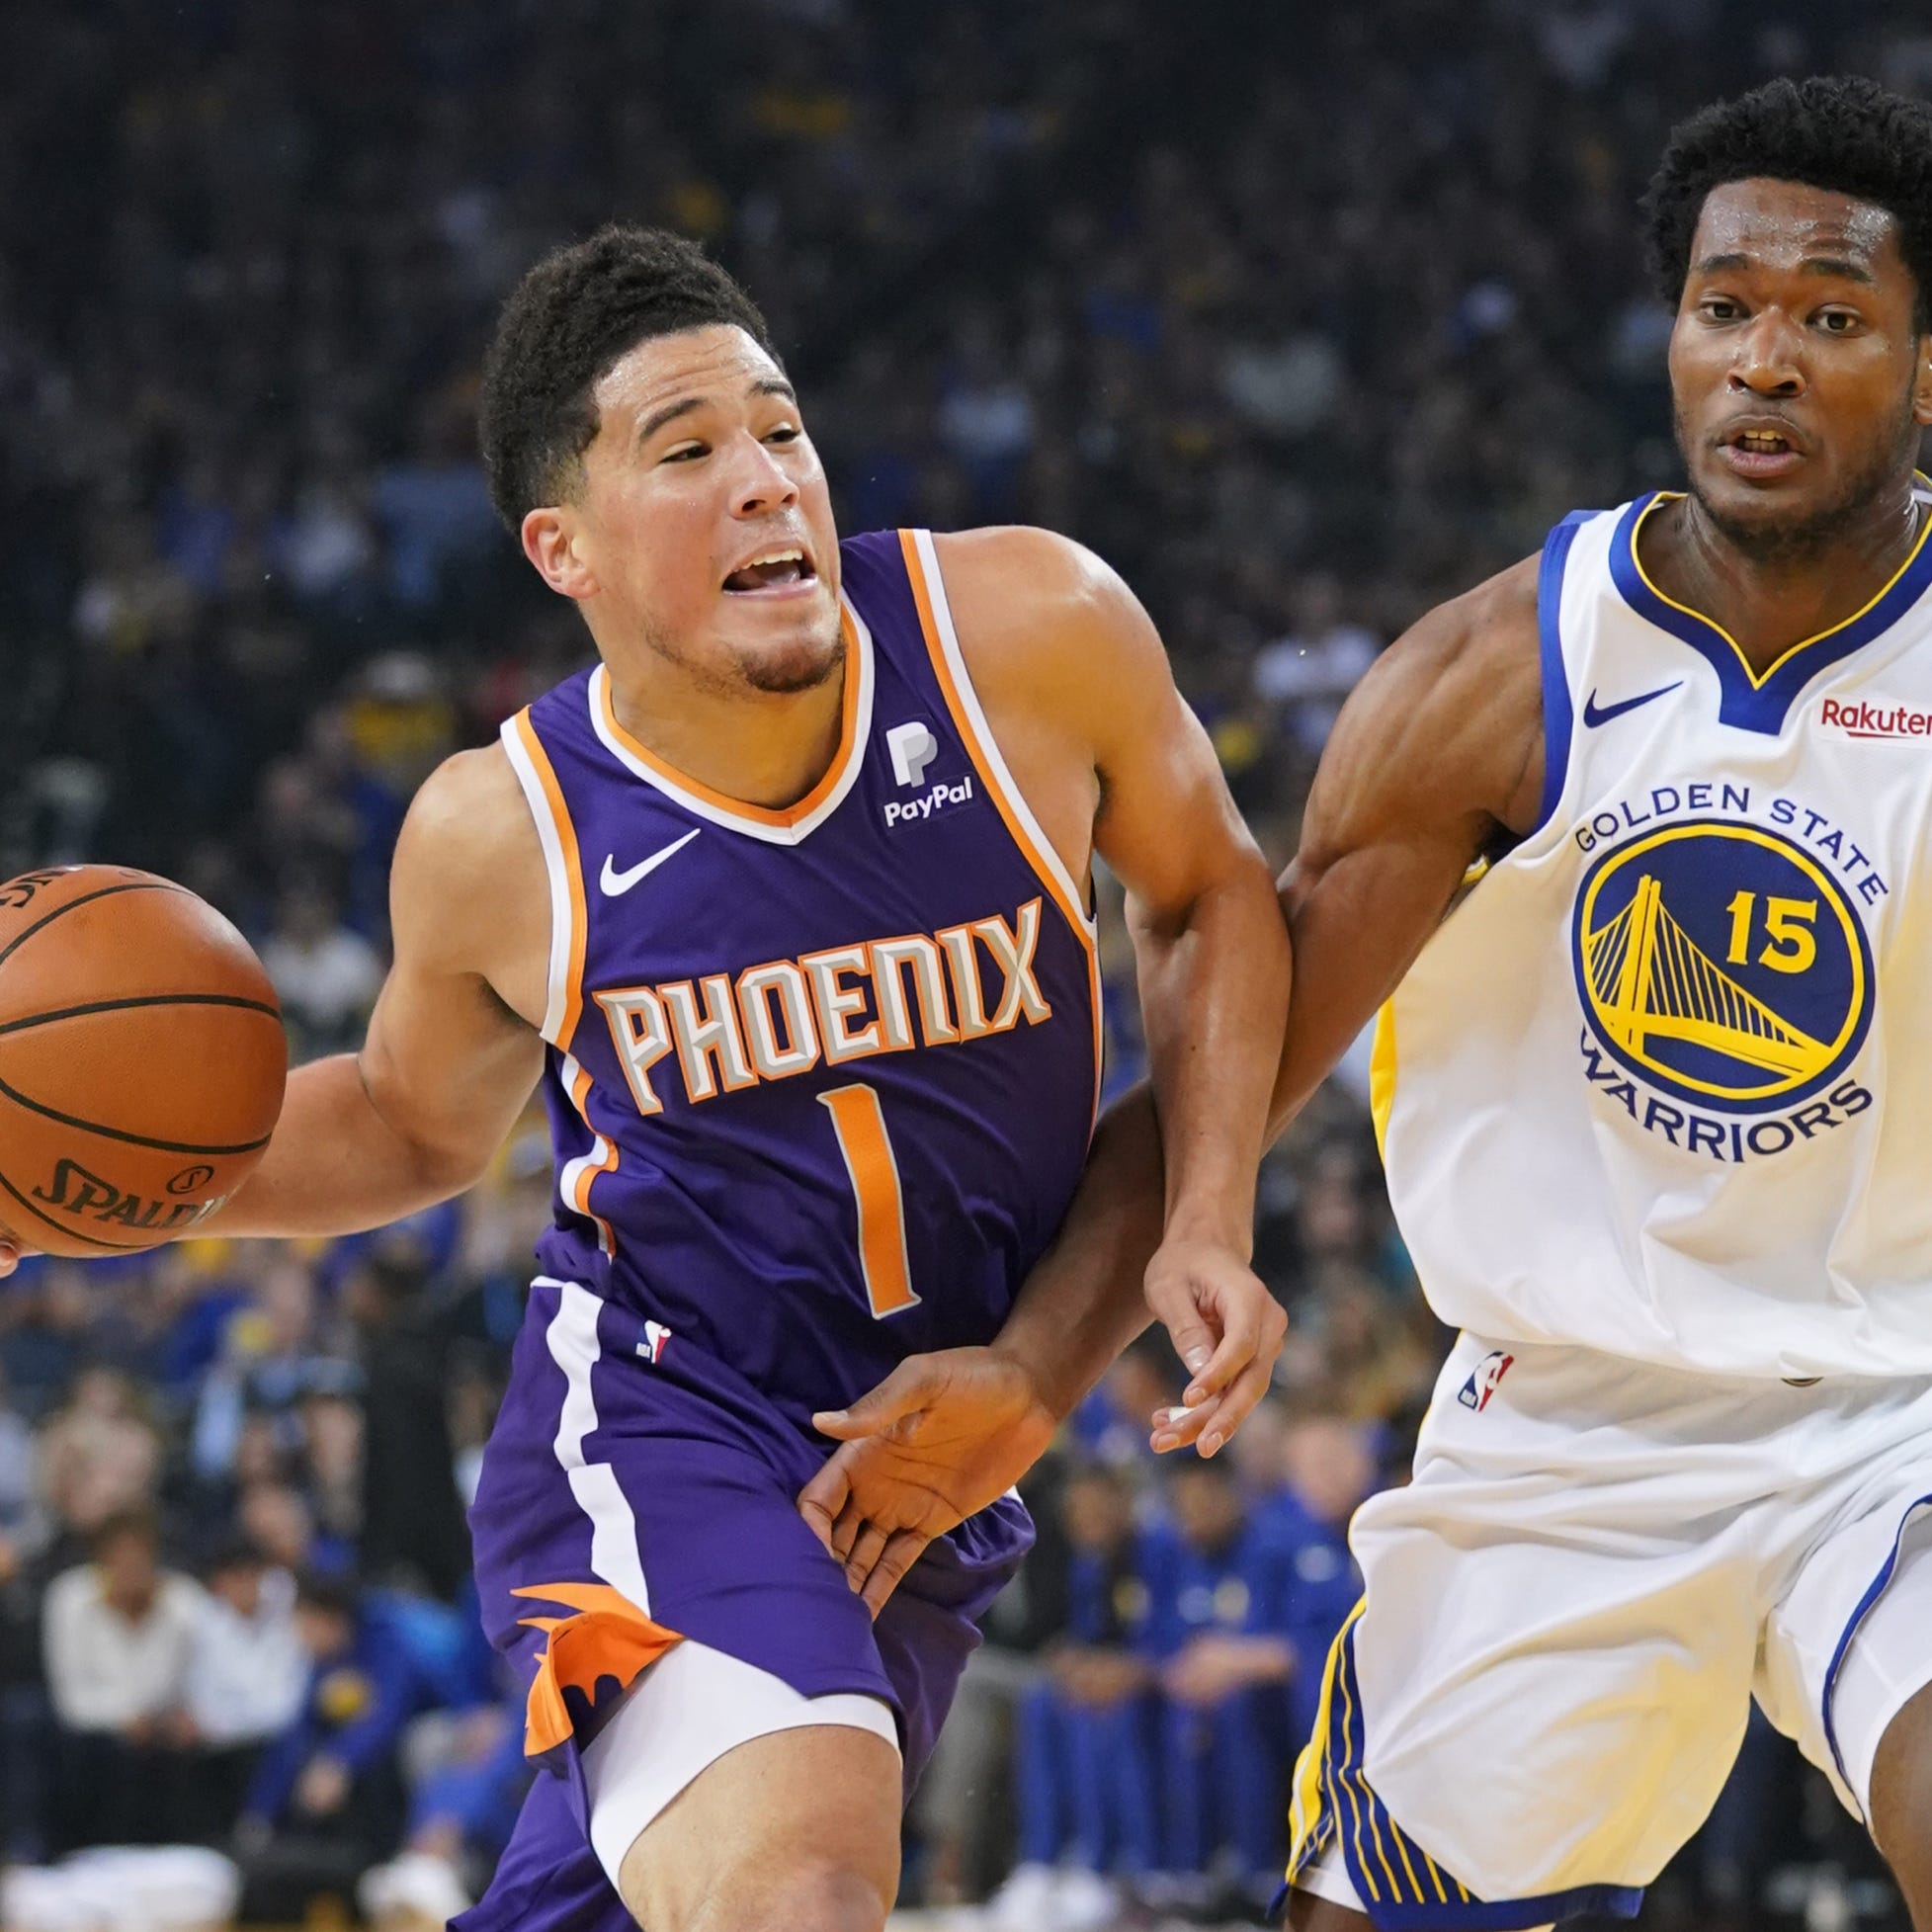 Phoenix Suns look to rebound at home against LeBron James, winless Los Angeles Lakers